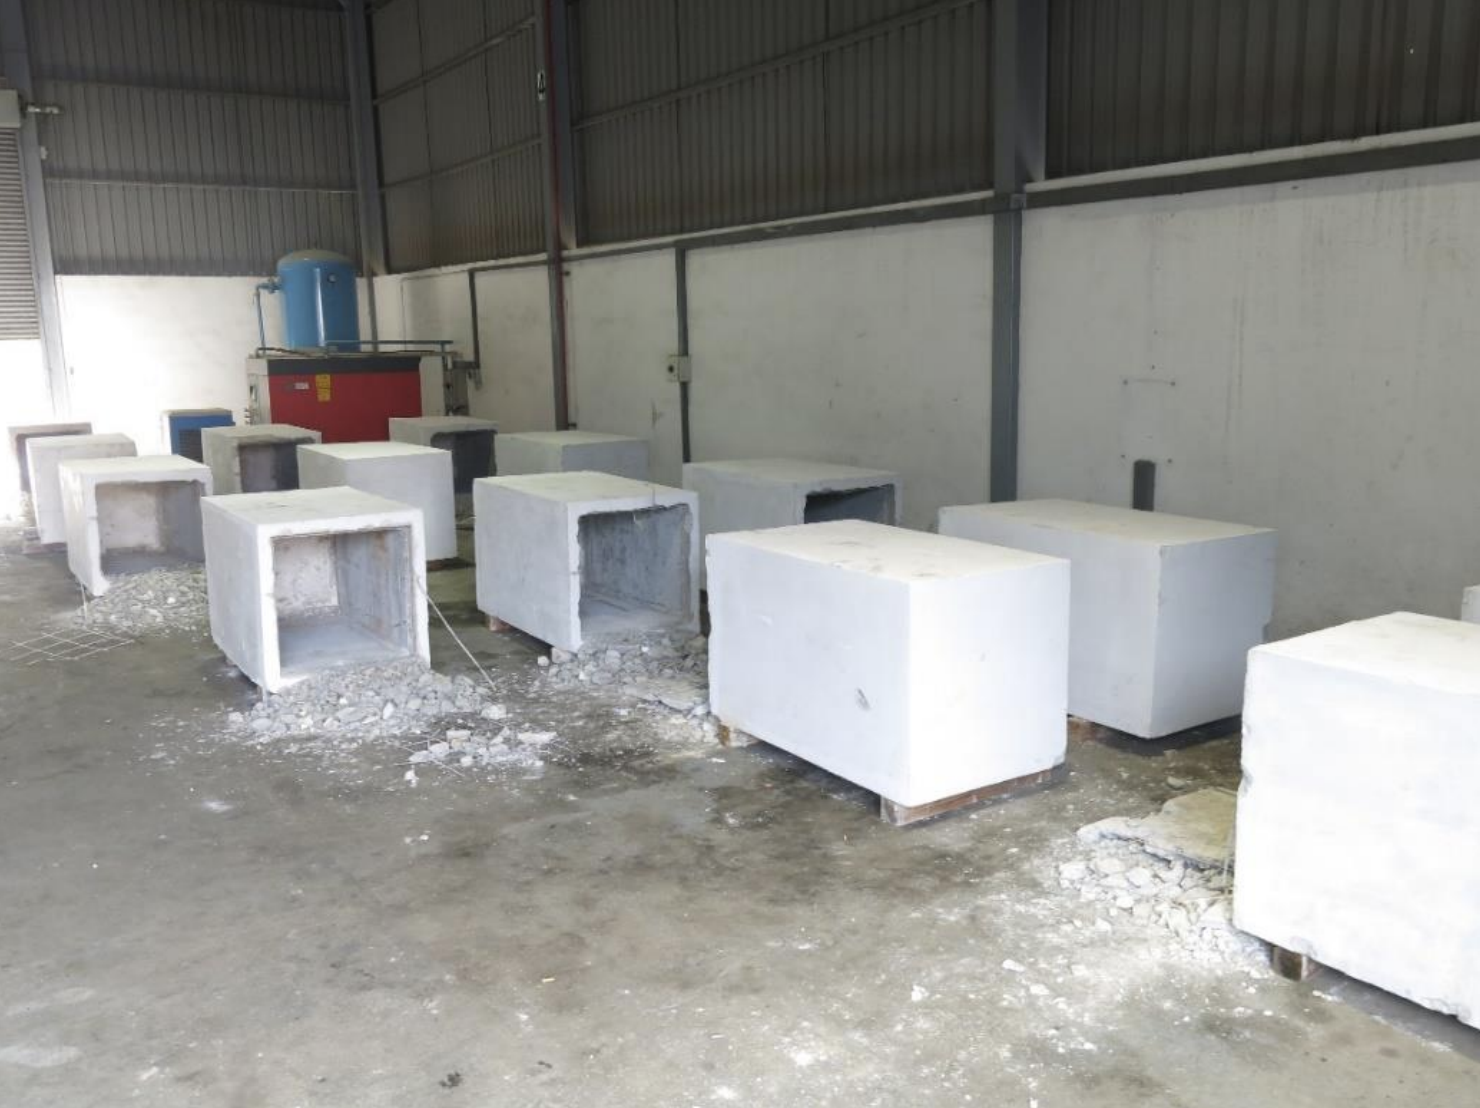 14 concrete blocks which had concealed the duty-unpaid cigarettes were found during the follow-up search at an industrial unit in Gul Road. Photo courtesy: Singapore Customs